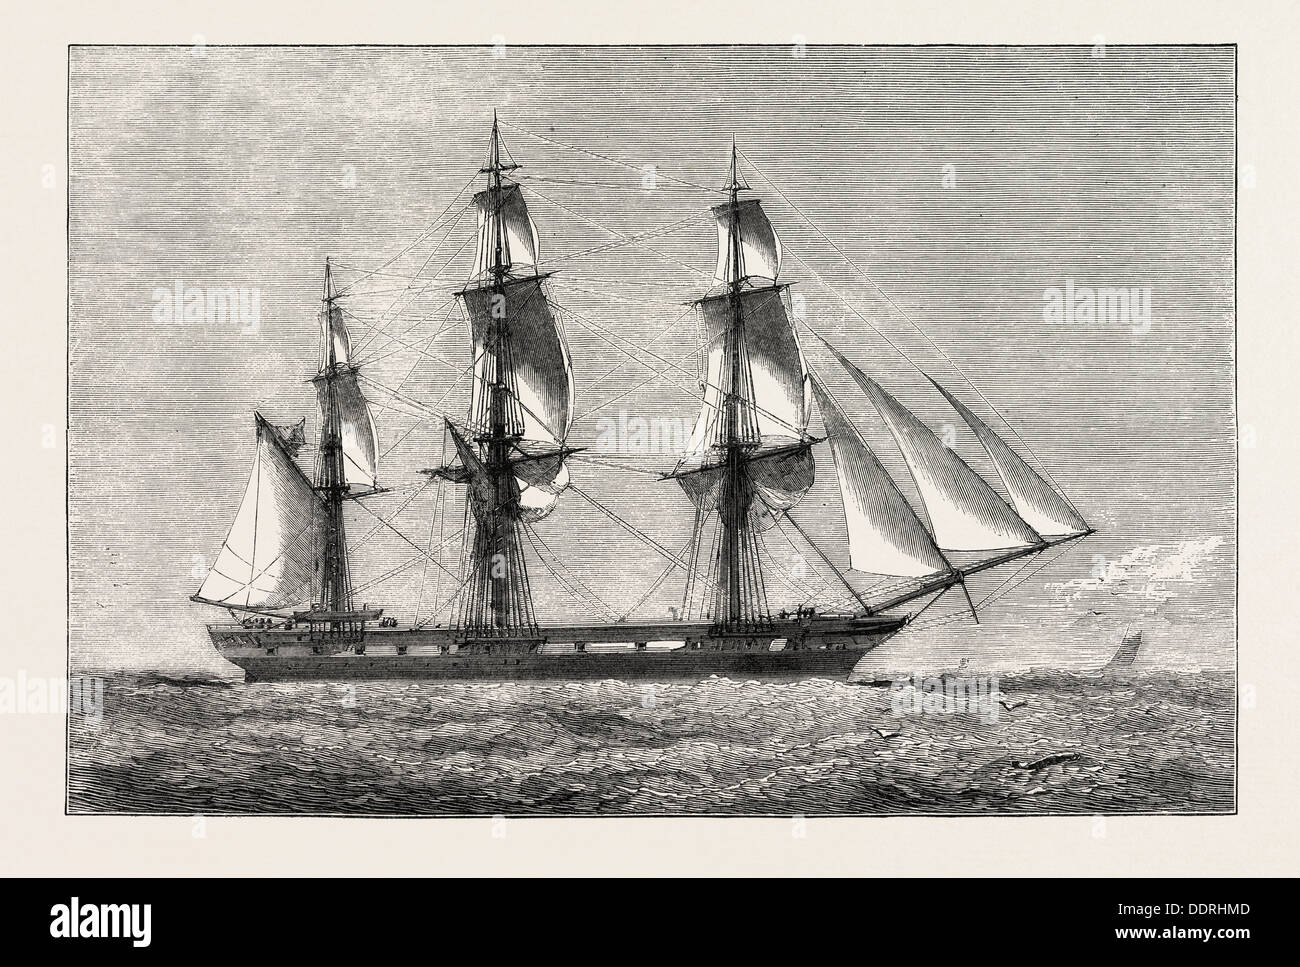 THE SHIP NORTHFILEET, SUNK OFF DUNGENESS, UK, 1873 engraving - Stock Image